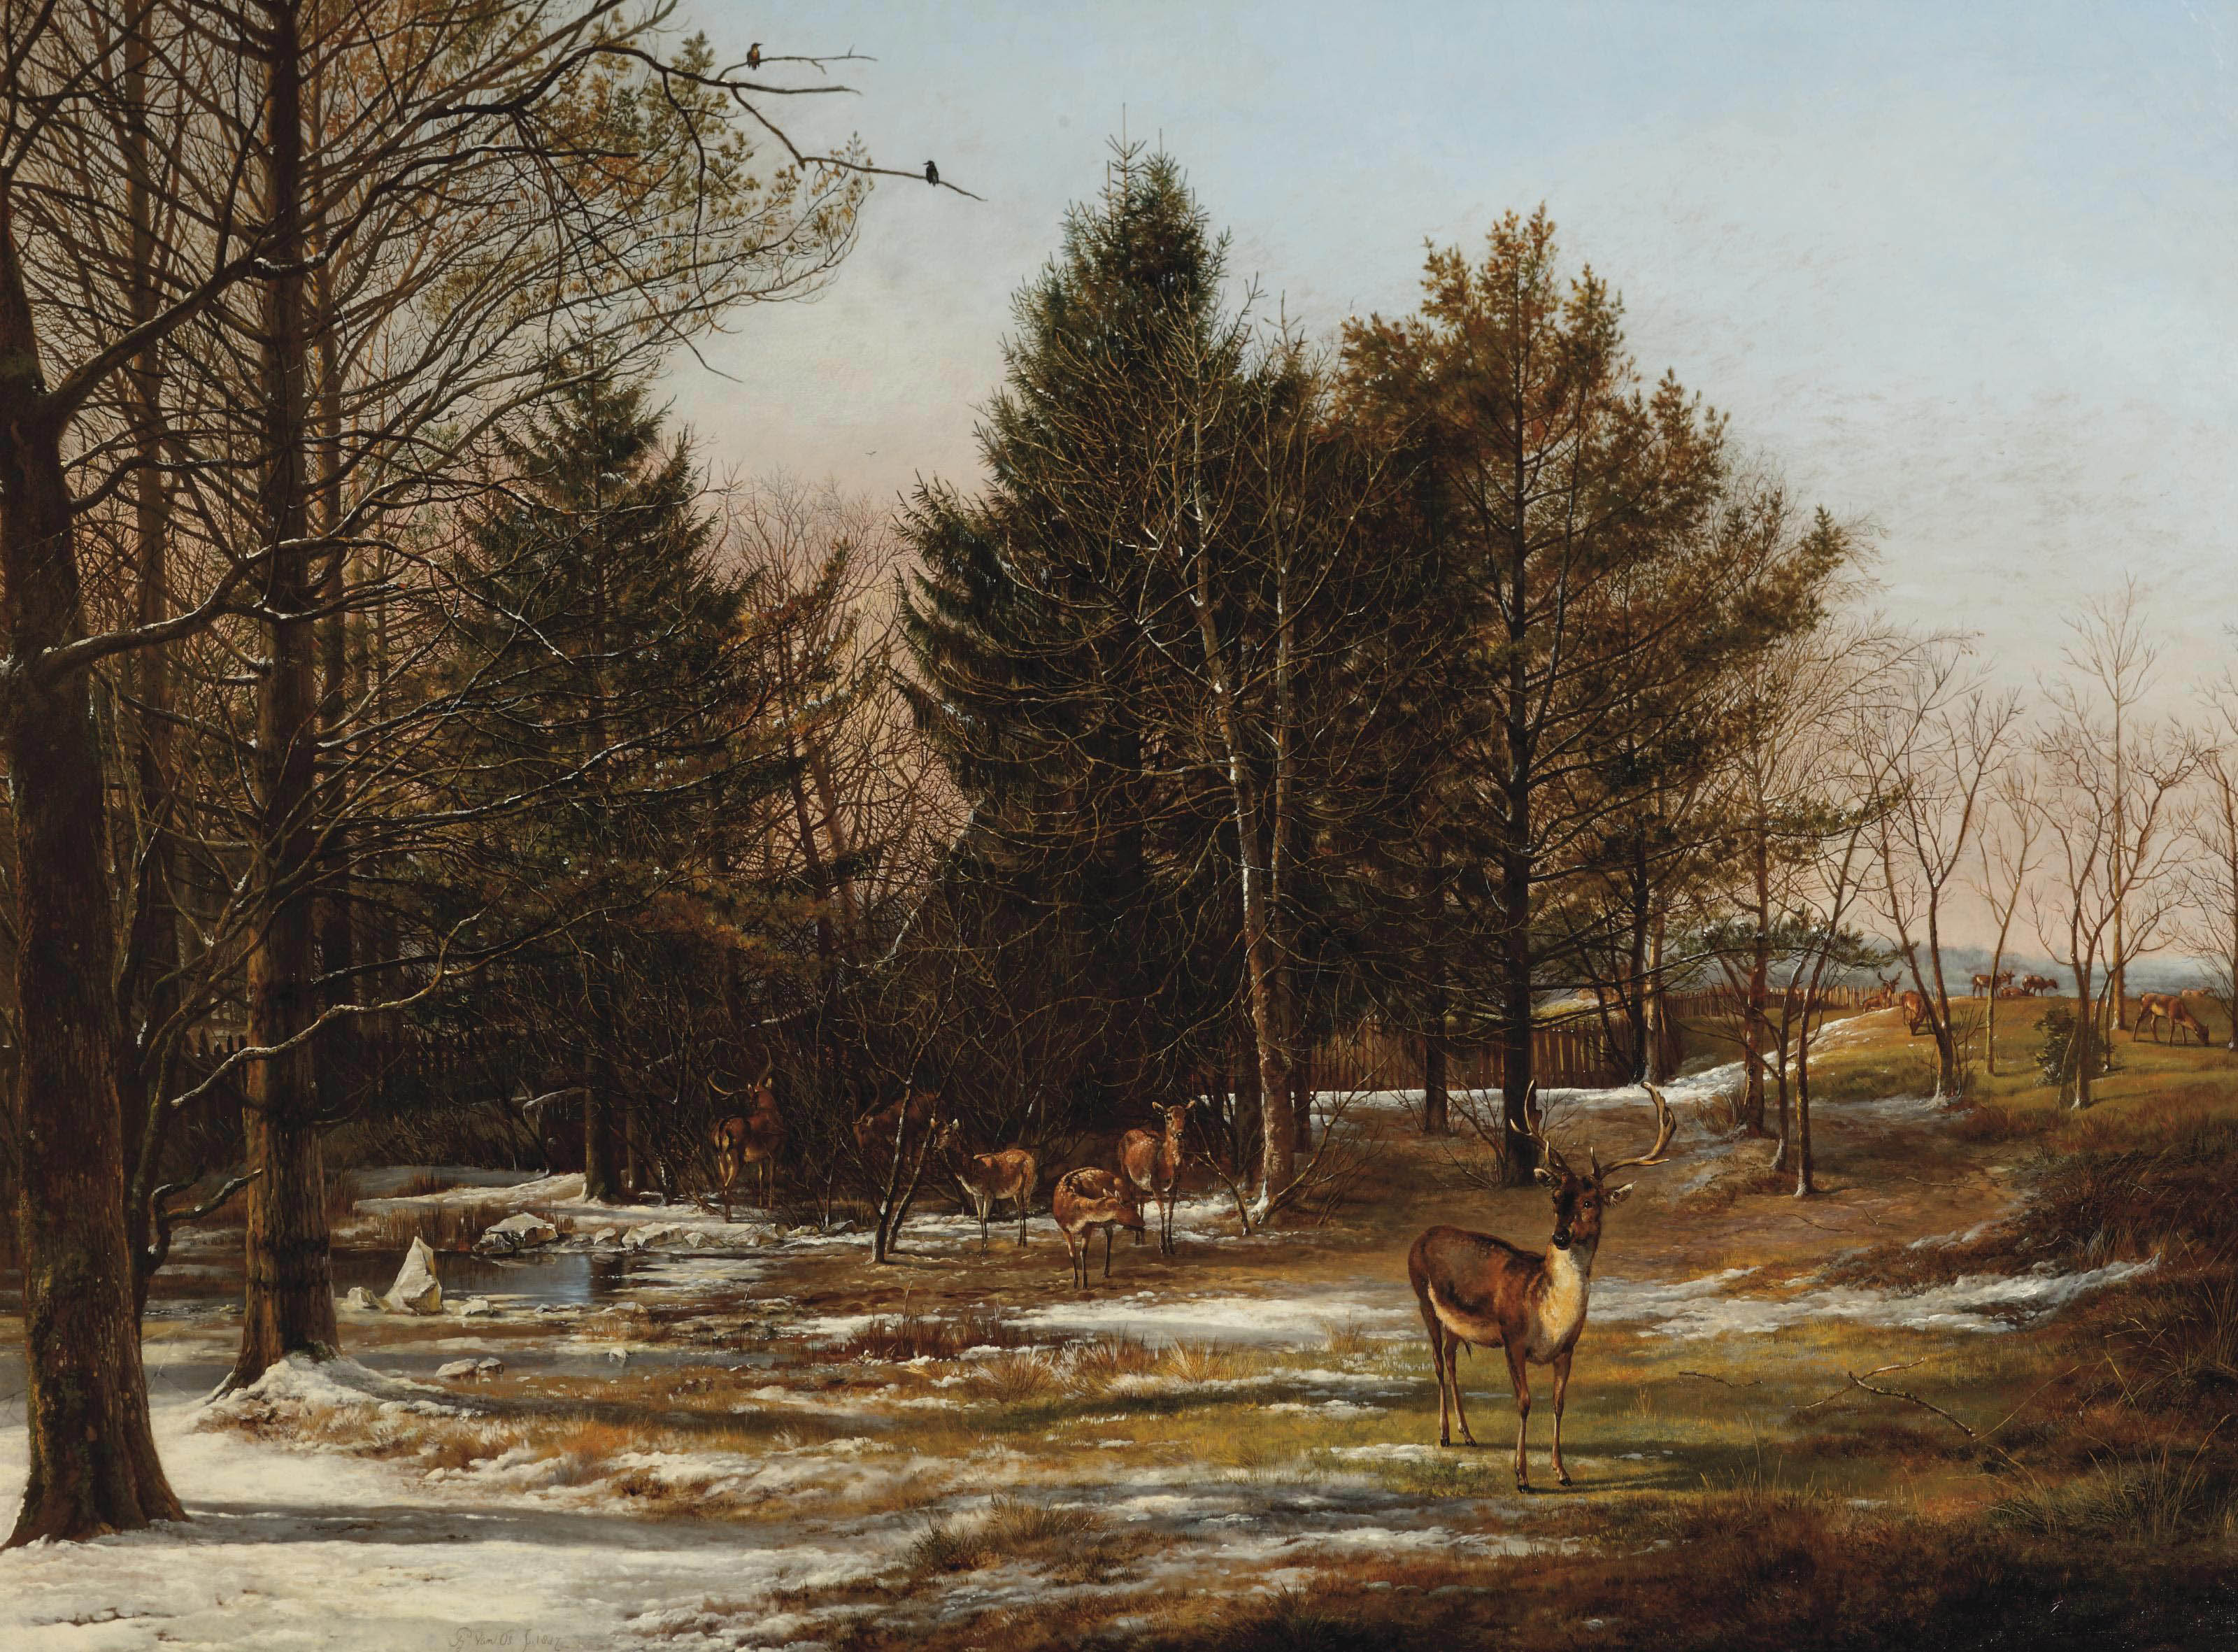 A wooded winter landscape with deers